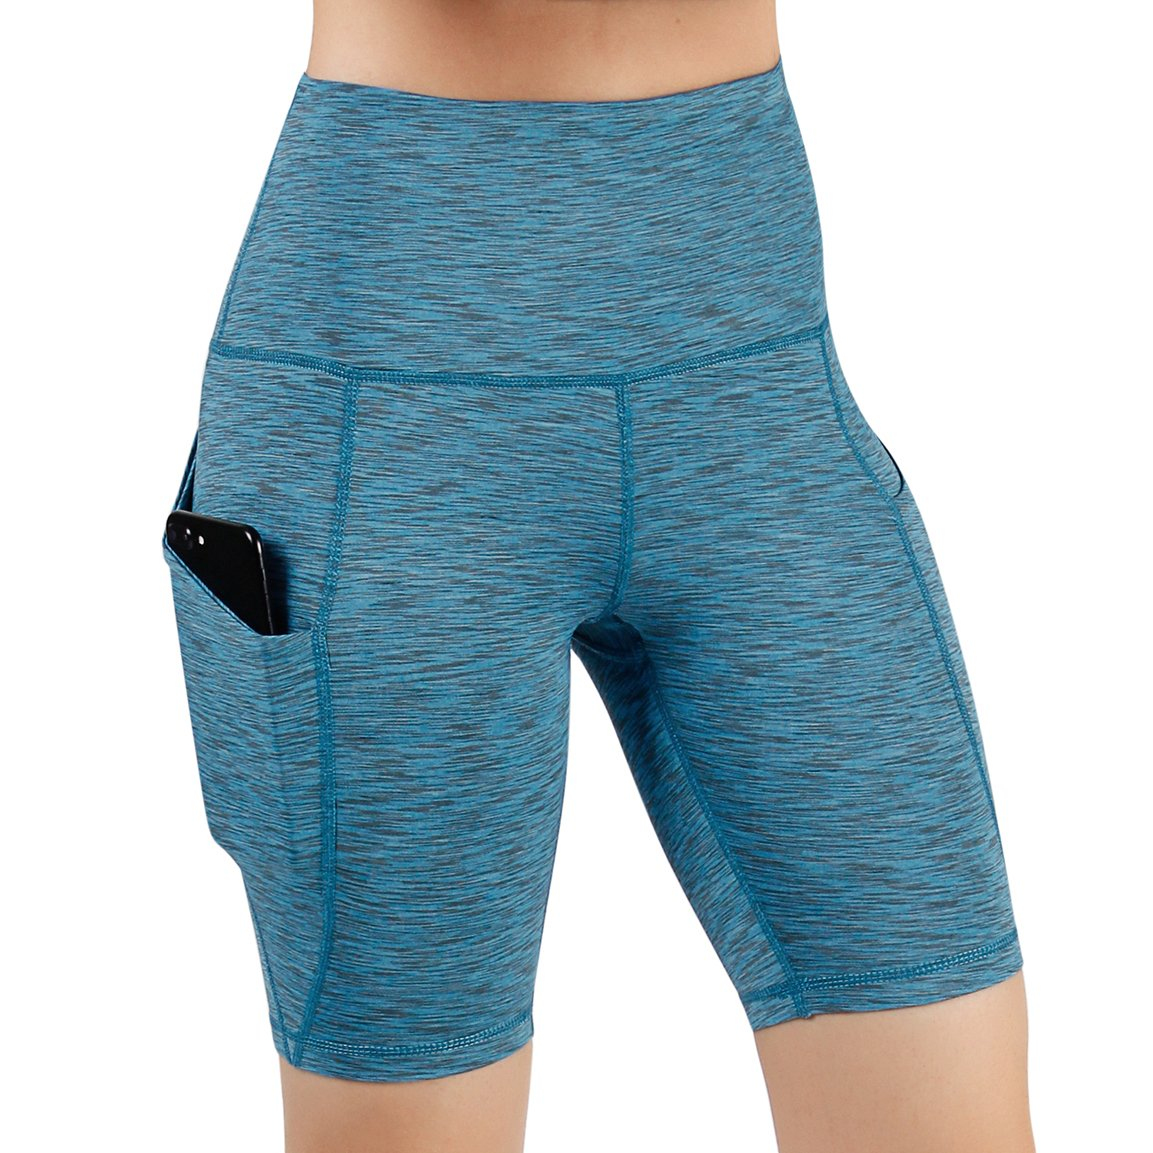 ODODOS High Waist Out Pocket Yoga Short Tummy Control Workout Running Athletic Non See-Through Yoga Shorts,SpaceDyeBlue,XX-Large by ODODOS